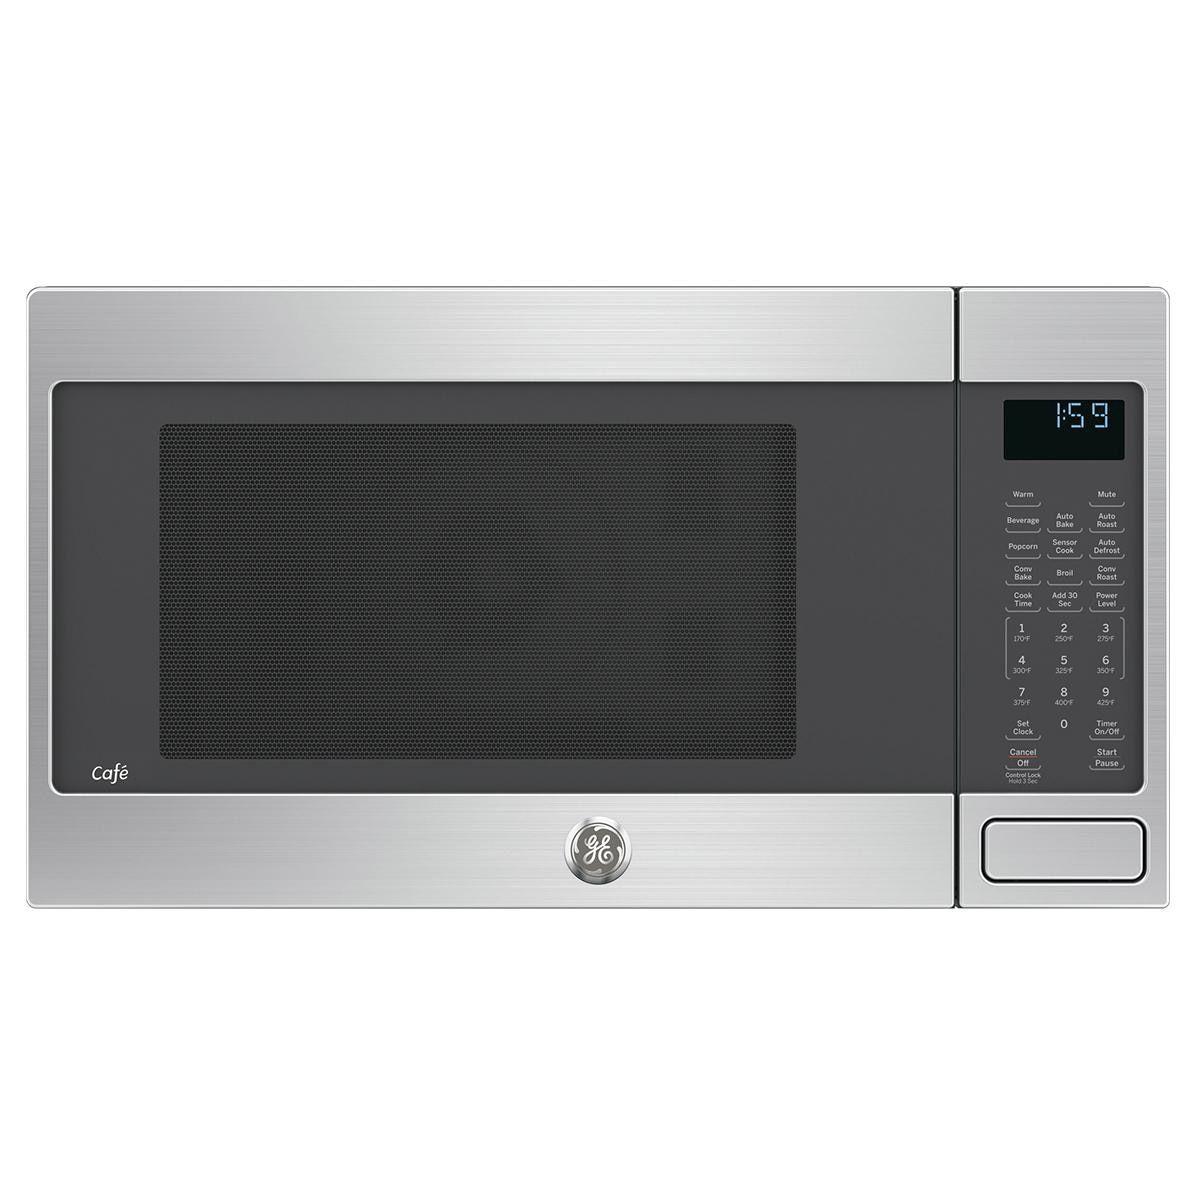 Product Main Image 0 Microwave Convection Oven Countertop Microwave Stainless Steel Microwave